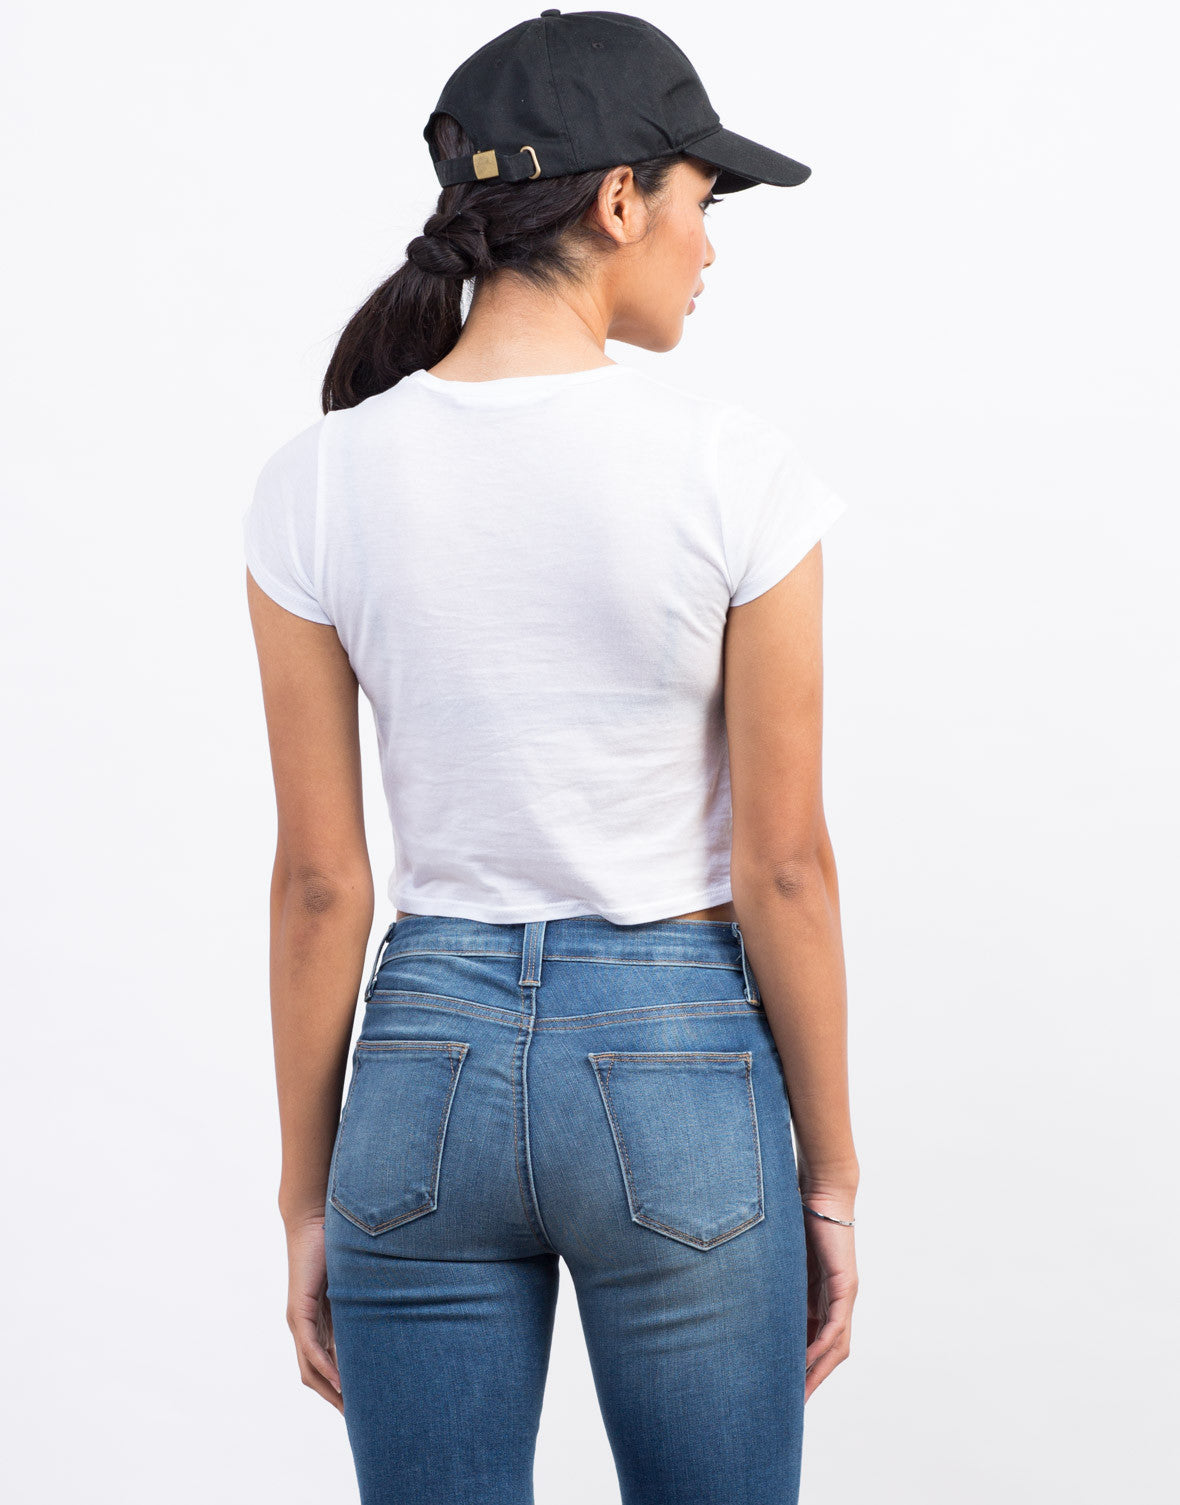 Back View of Mermaid Off Duty Cropped Tee